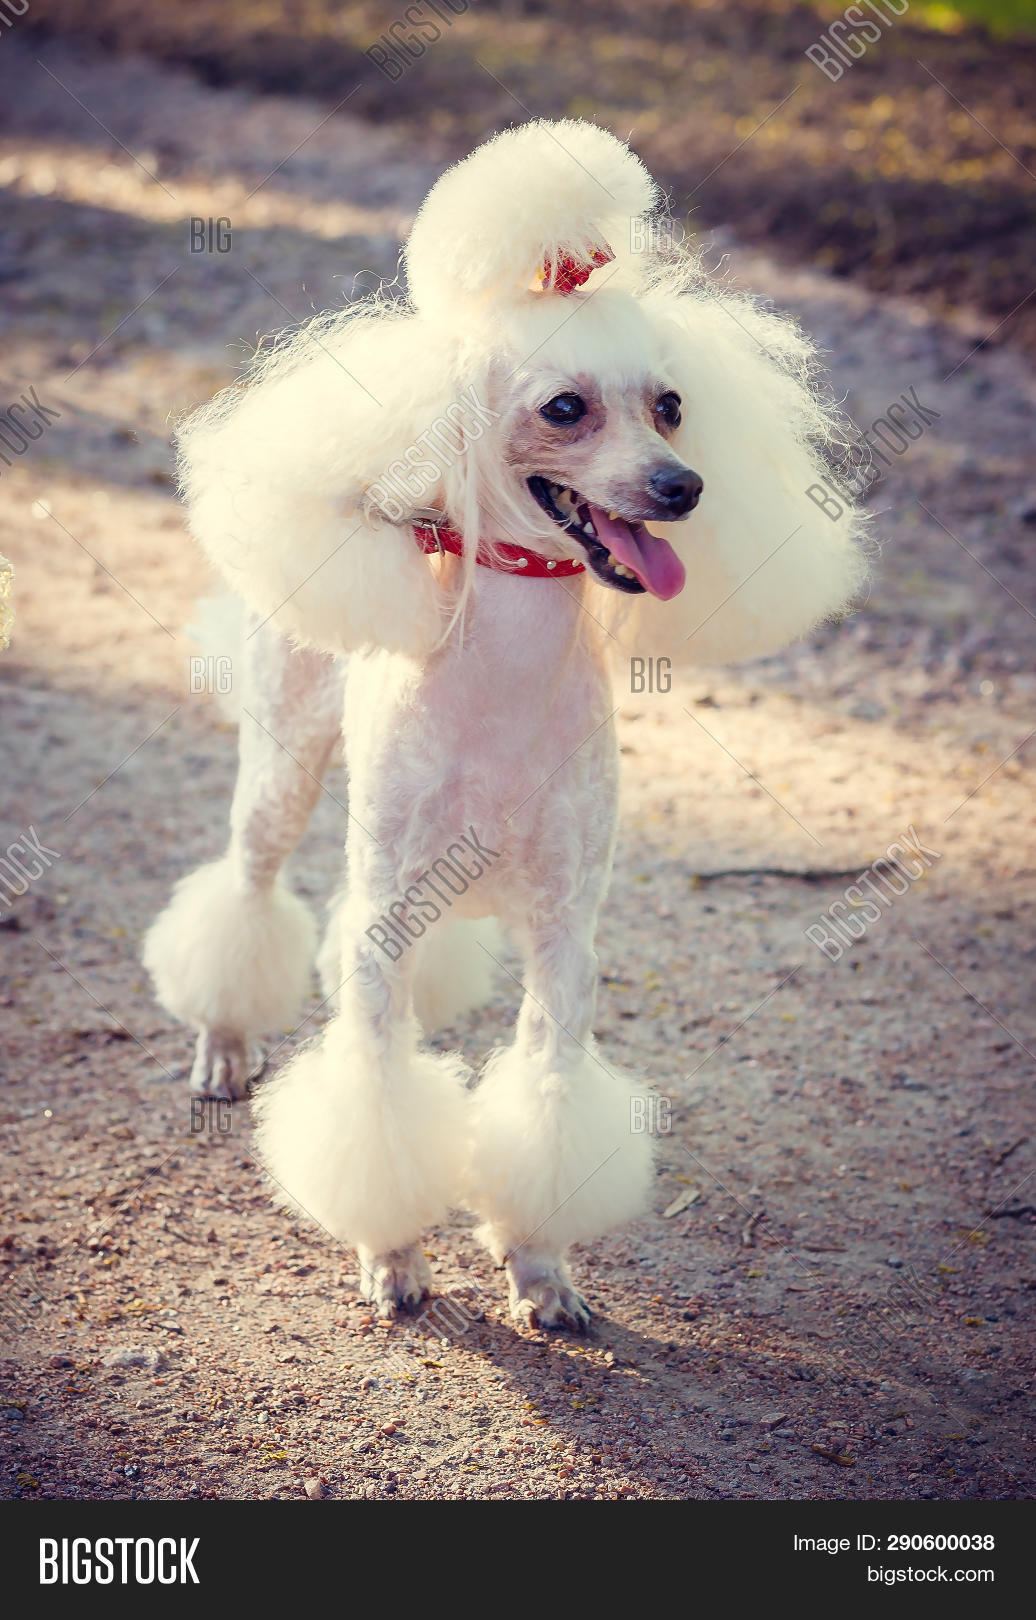 Fantastic Dog Poodle Haircut Image Photo Free Trial Bigstock Natural Hairstyles Runnerswayorg